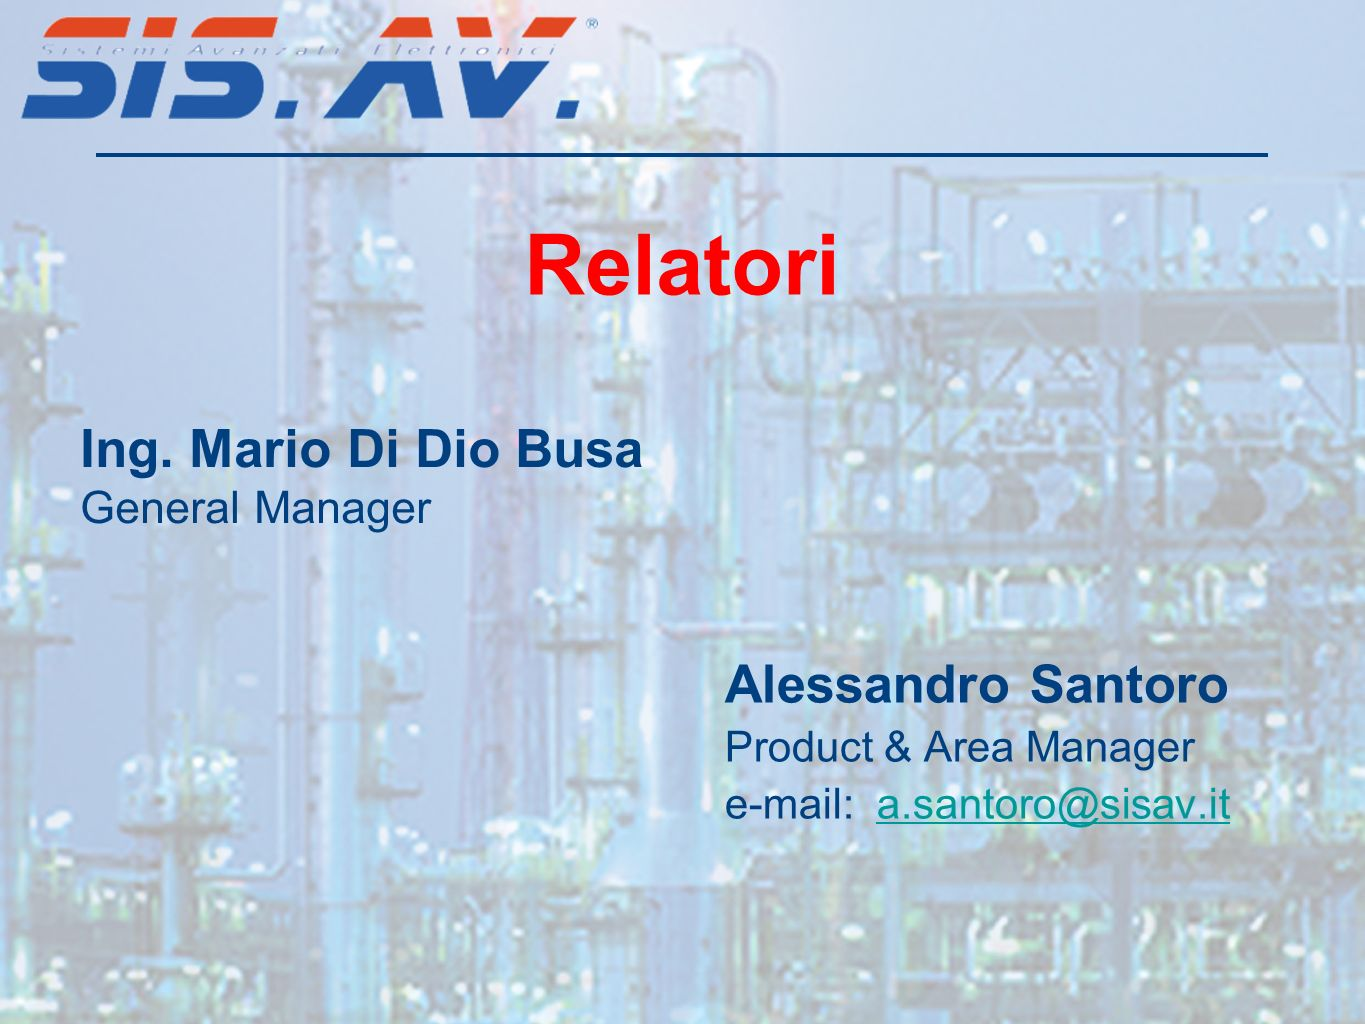 Alessandro Santoro Product & Area Manager e-mail: a.santoro@sisav.ita.santoro@sisav.it Ing. Mario Di Dio Busa General Manager Relatori